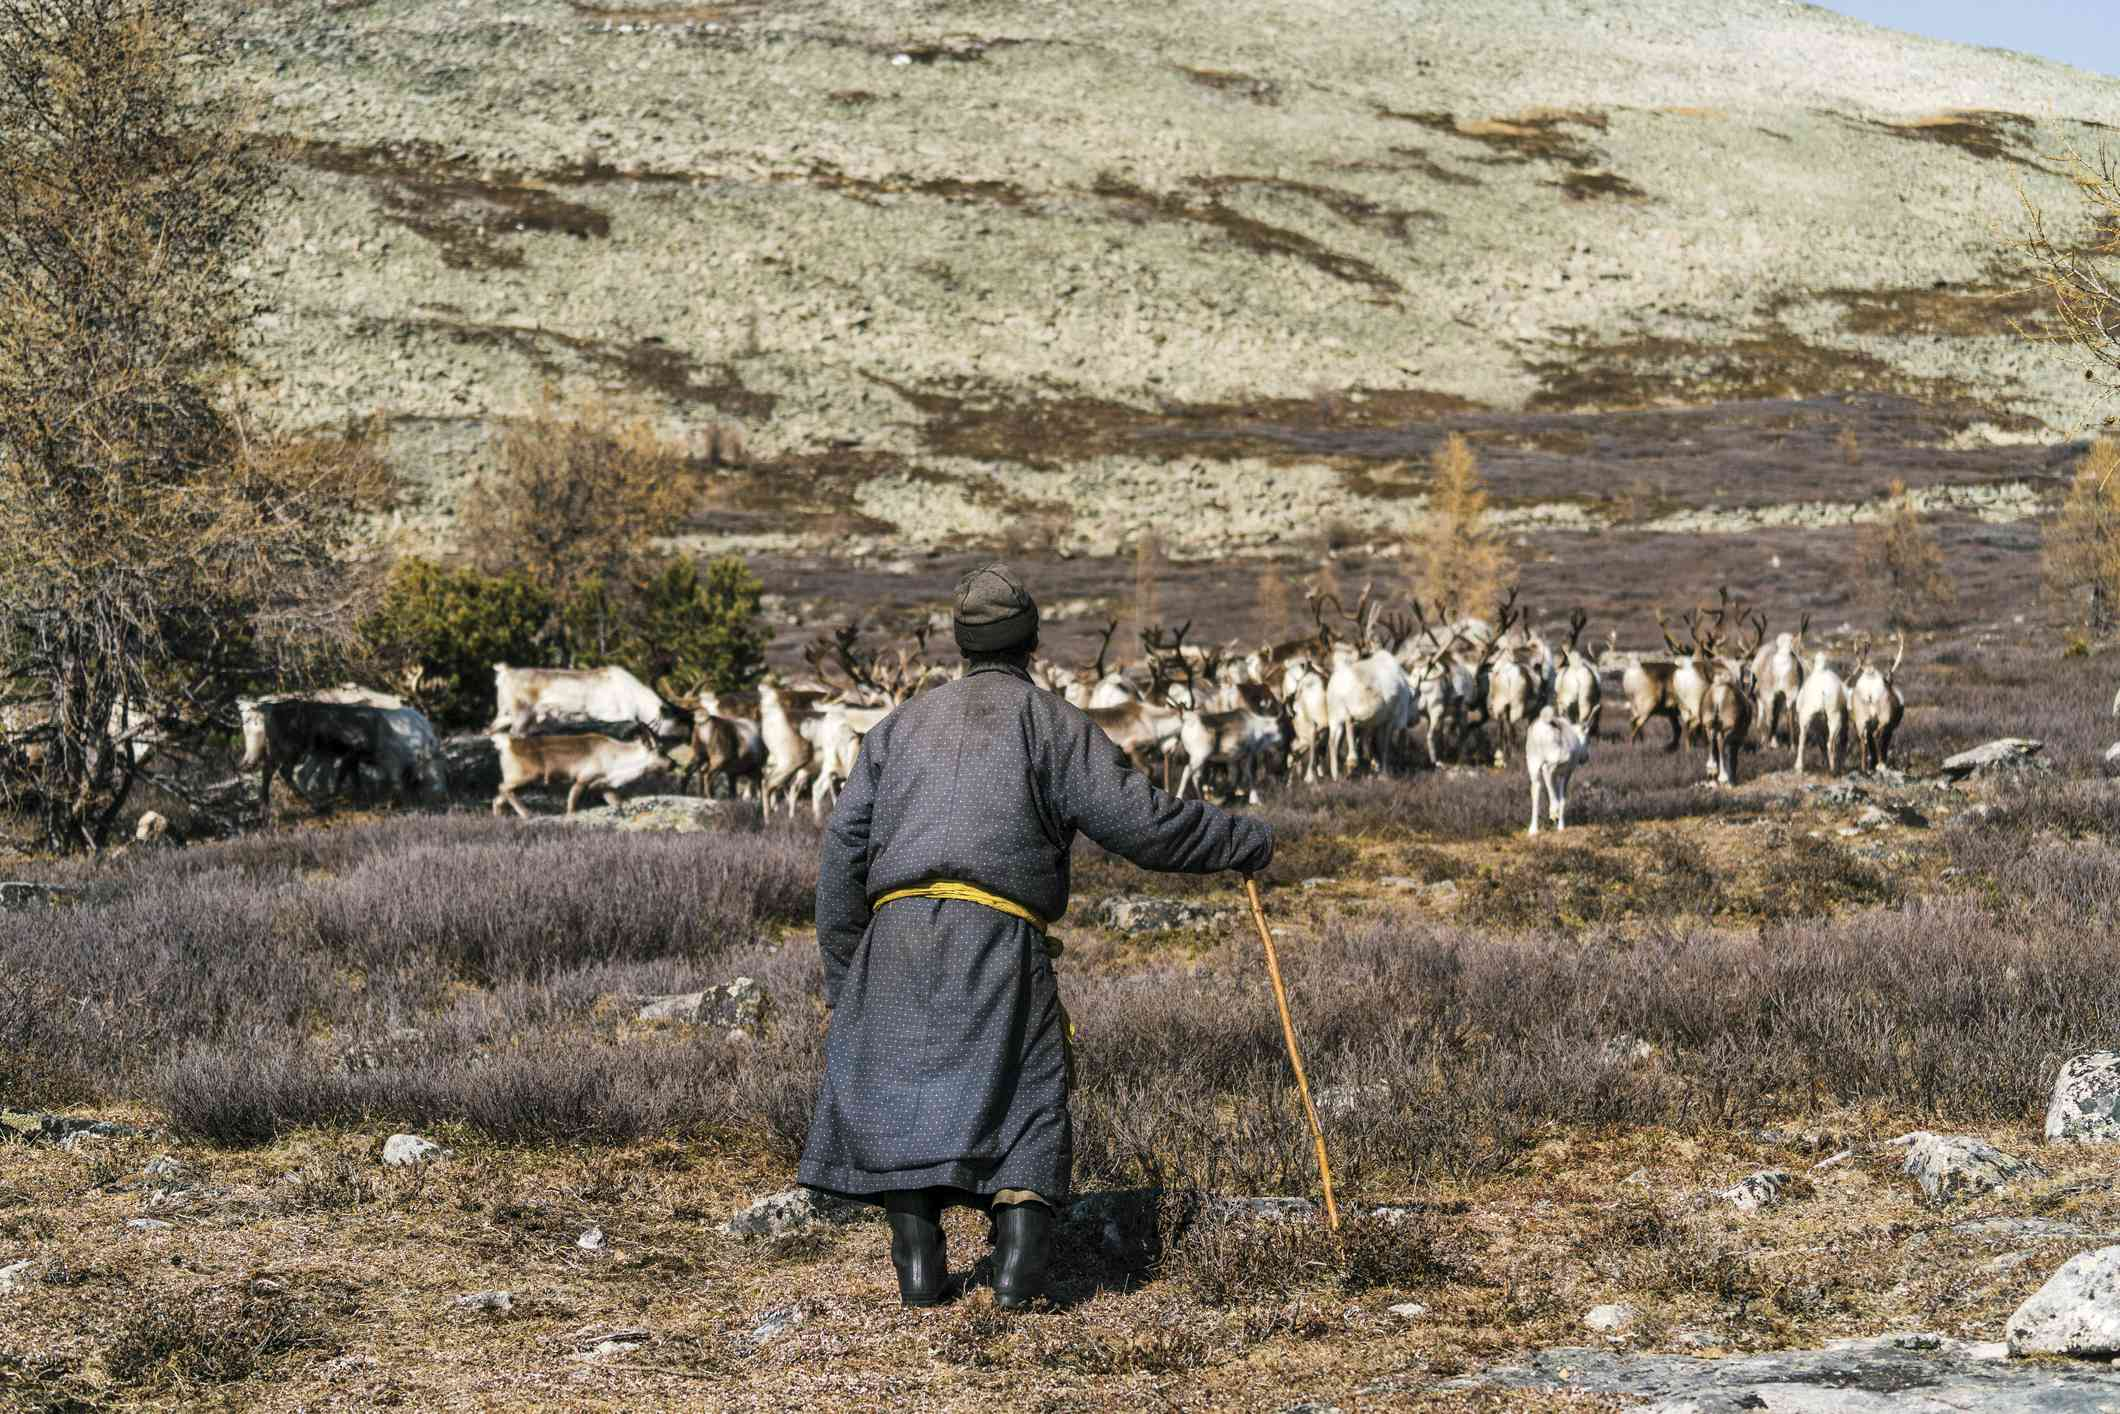 Shepherd with sheep on the steppe tundra in Siberia